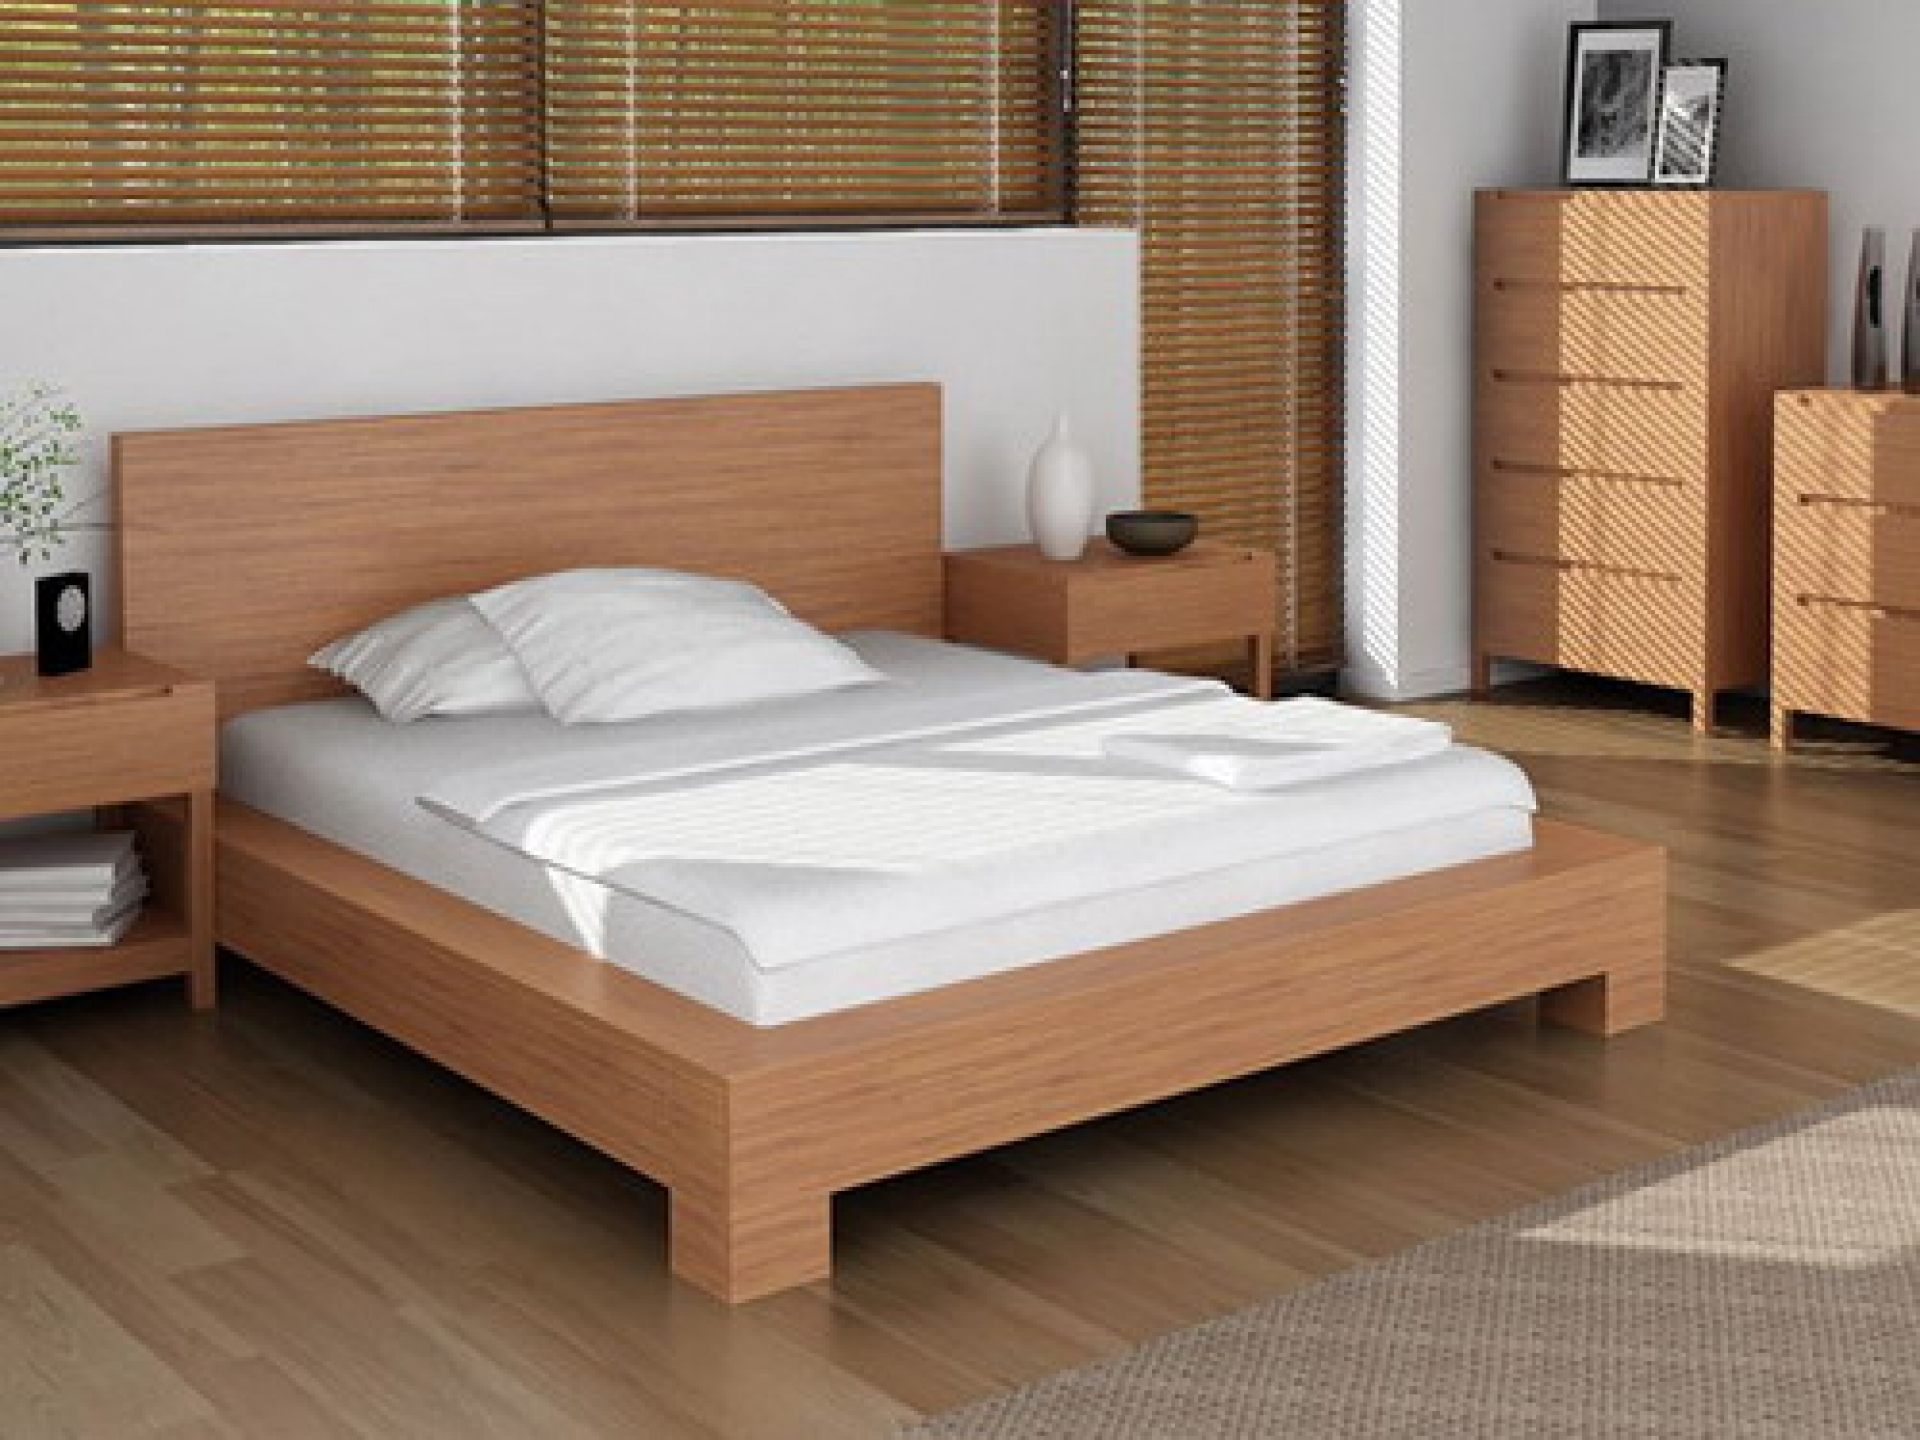 Simple wood bed frame ideas homesfeed for Simple bed designs